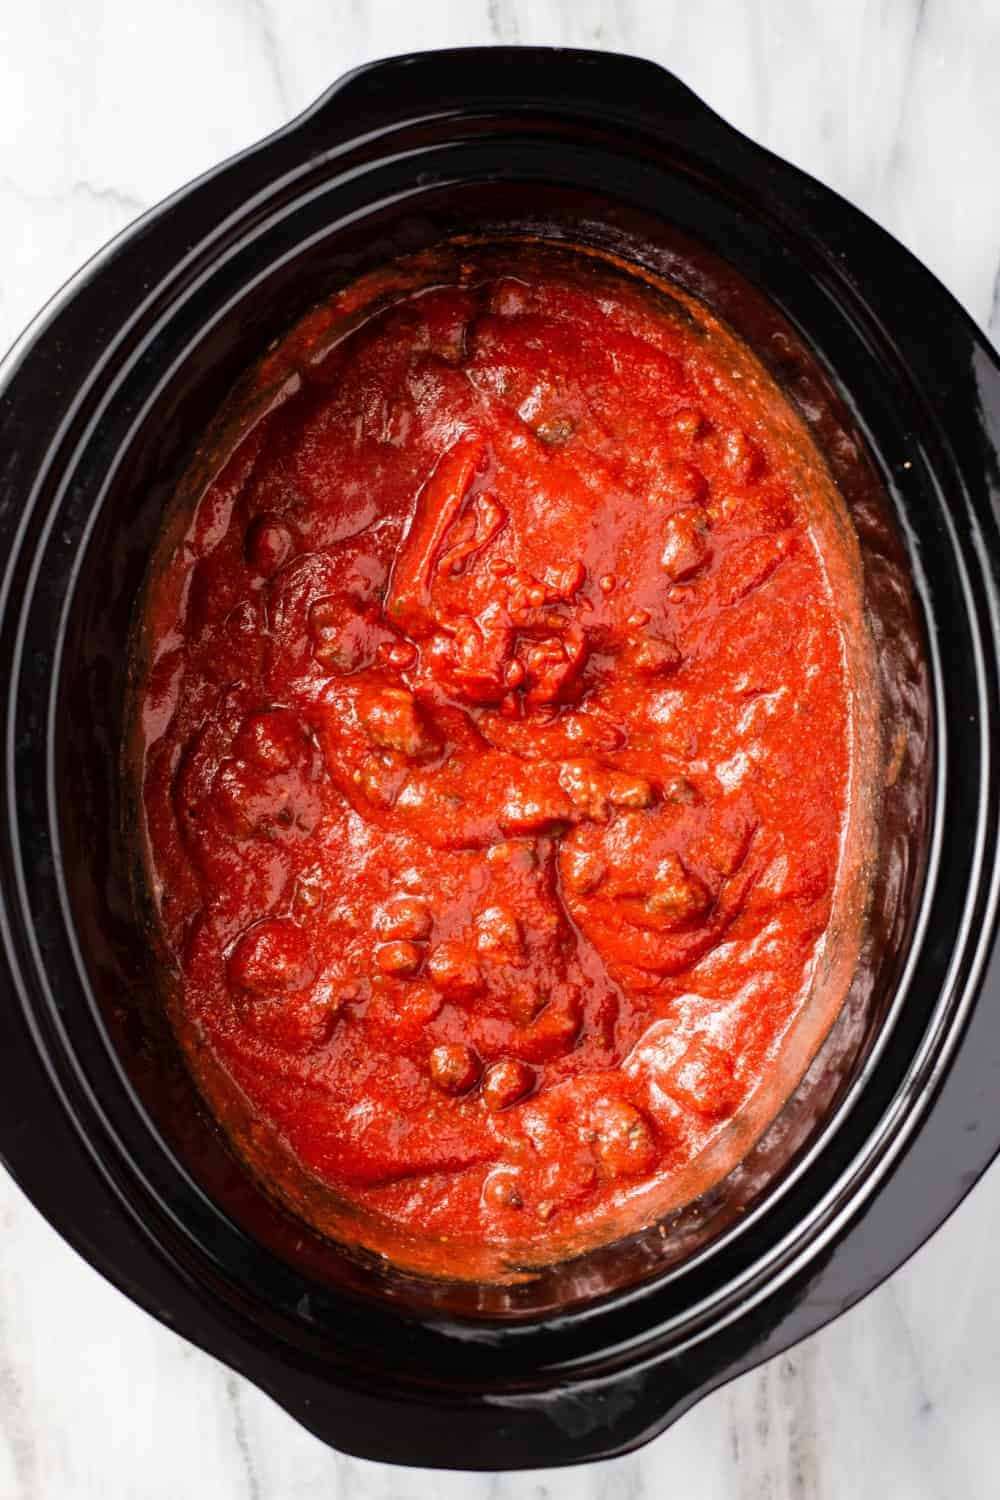 Overhead view of homemade meat sauce in the black crock of a slow cooker